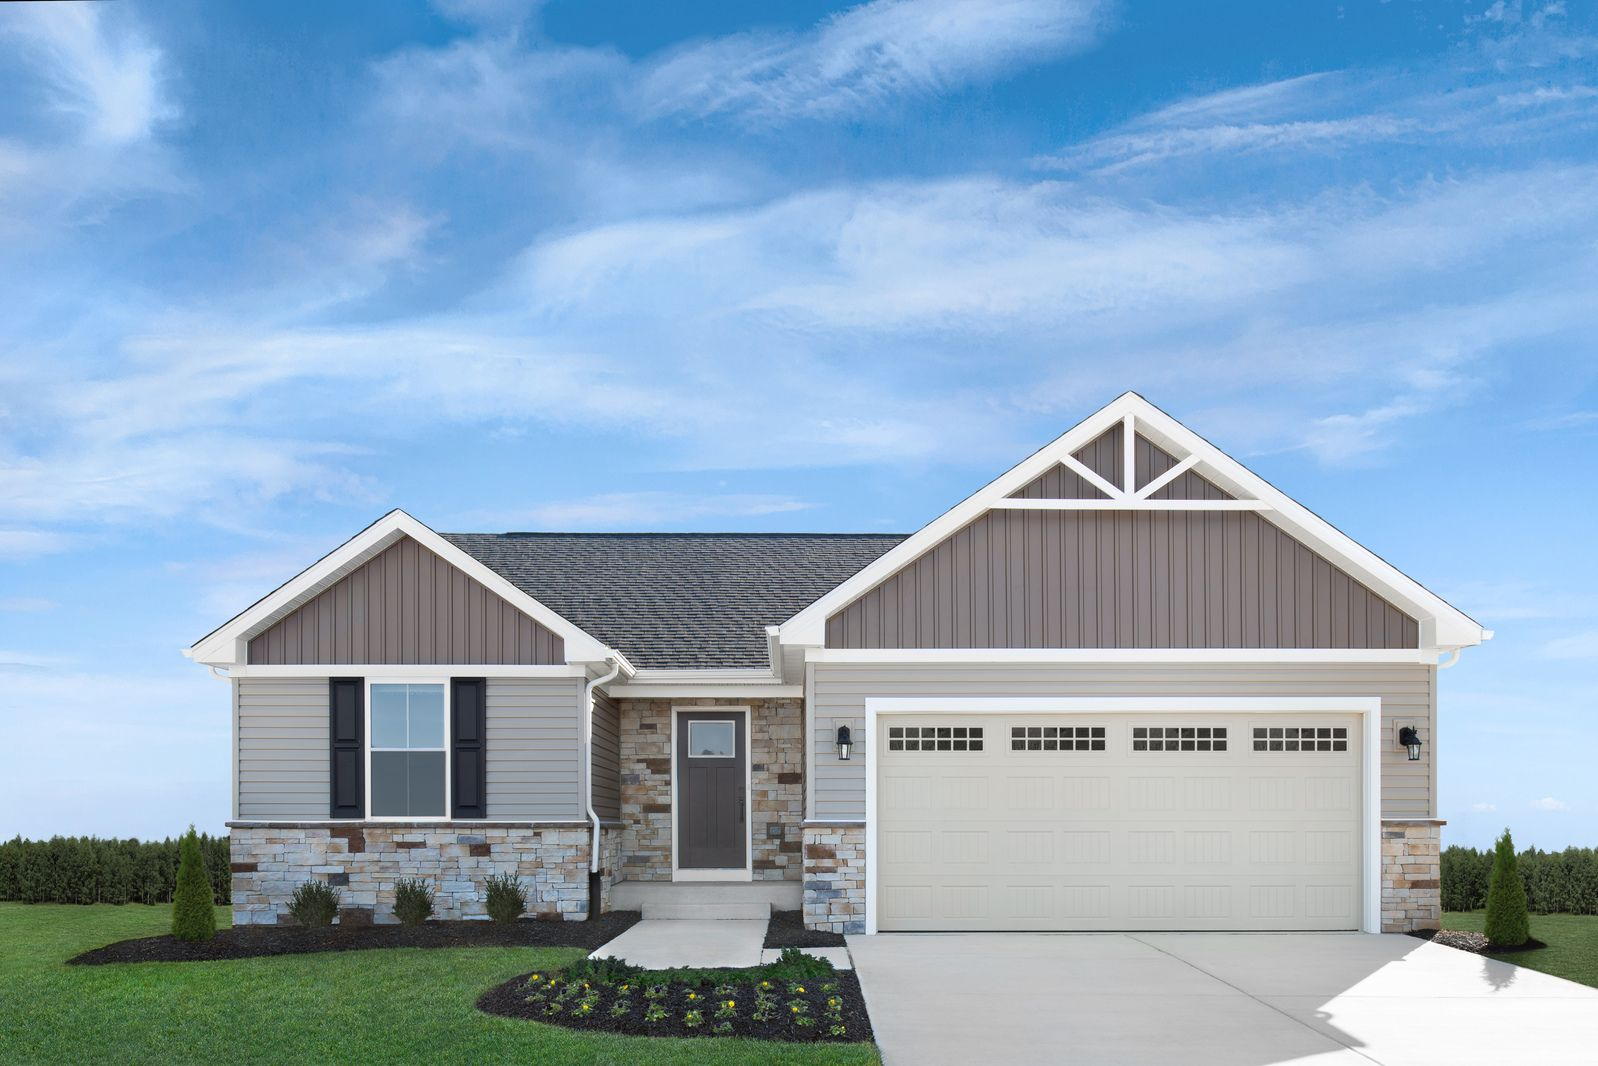 THORNTON GROVE 1-STORY: LOW $300S:The only maintenance-free 1-level new home community just 8 miles to downtown Nashville!Click here to schedule a visit to check out our gorgeous community.